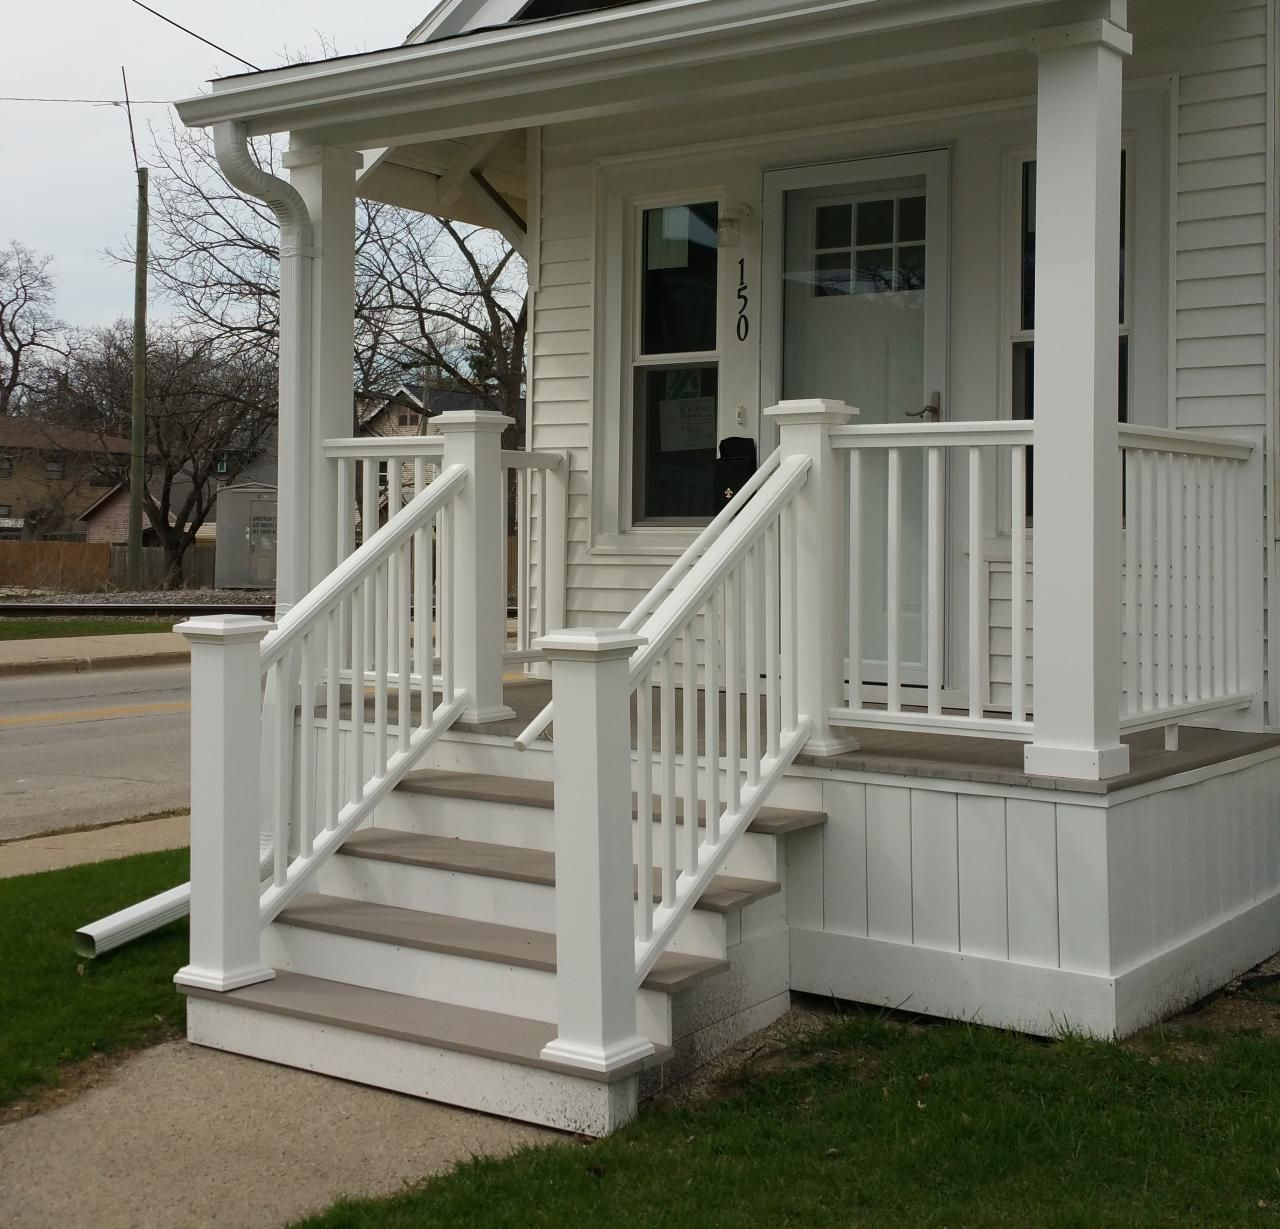 Chic Design Ideas using White Wooden Siding Panels and